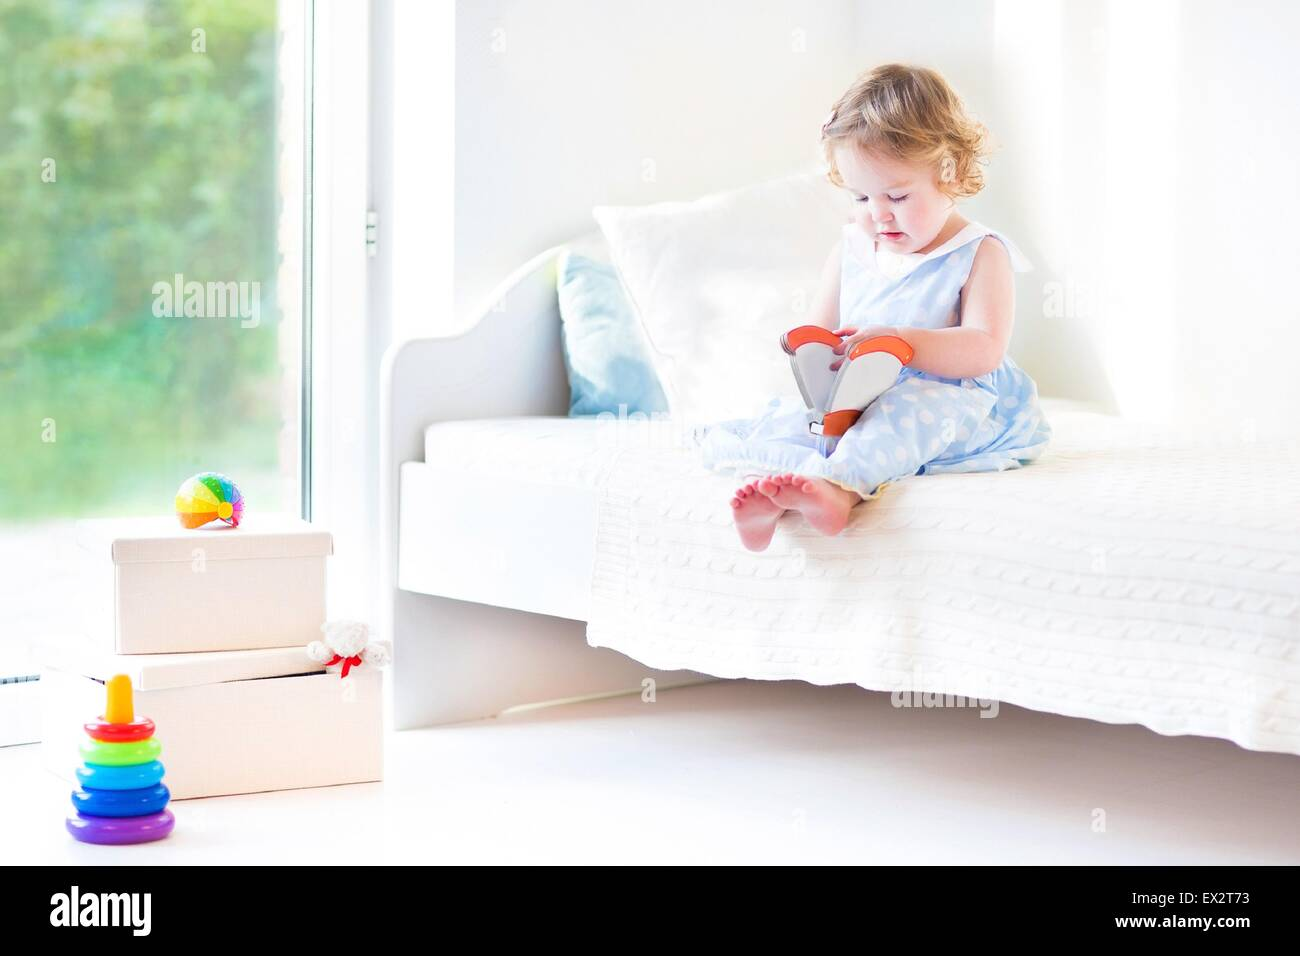 toddler stockfotos toddler bilder alamy. Black Bedroom Furniture Sets. Home Design Ideas